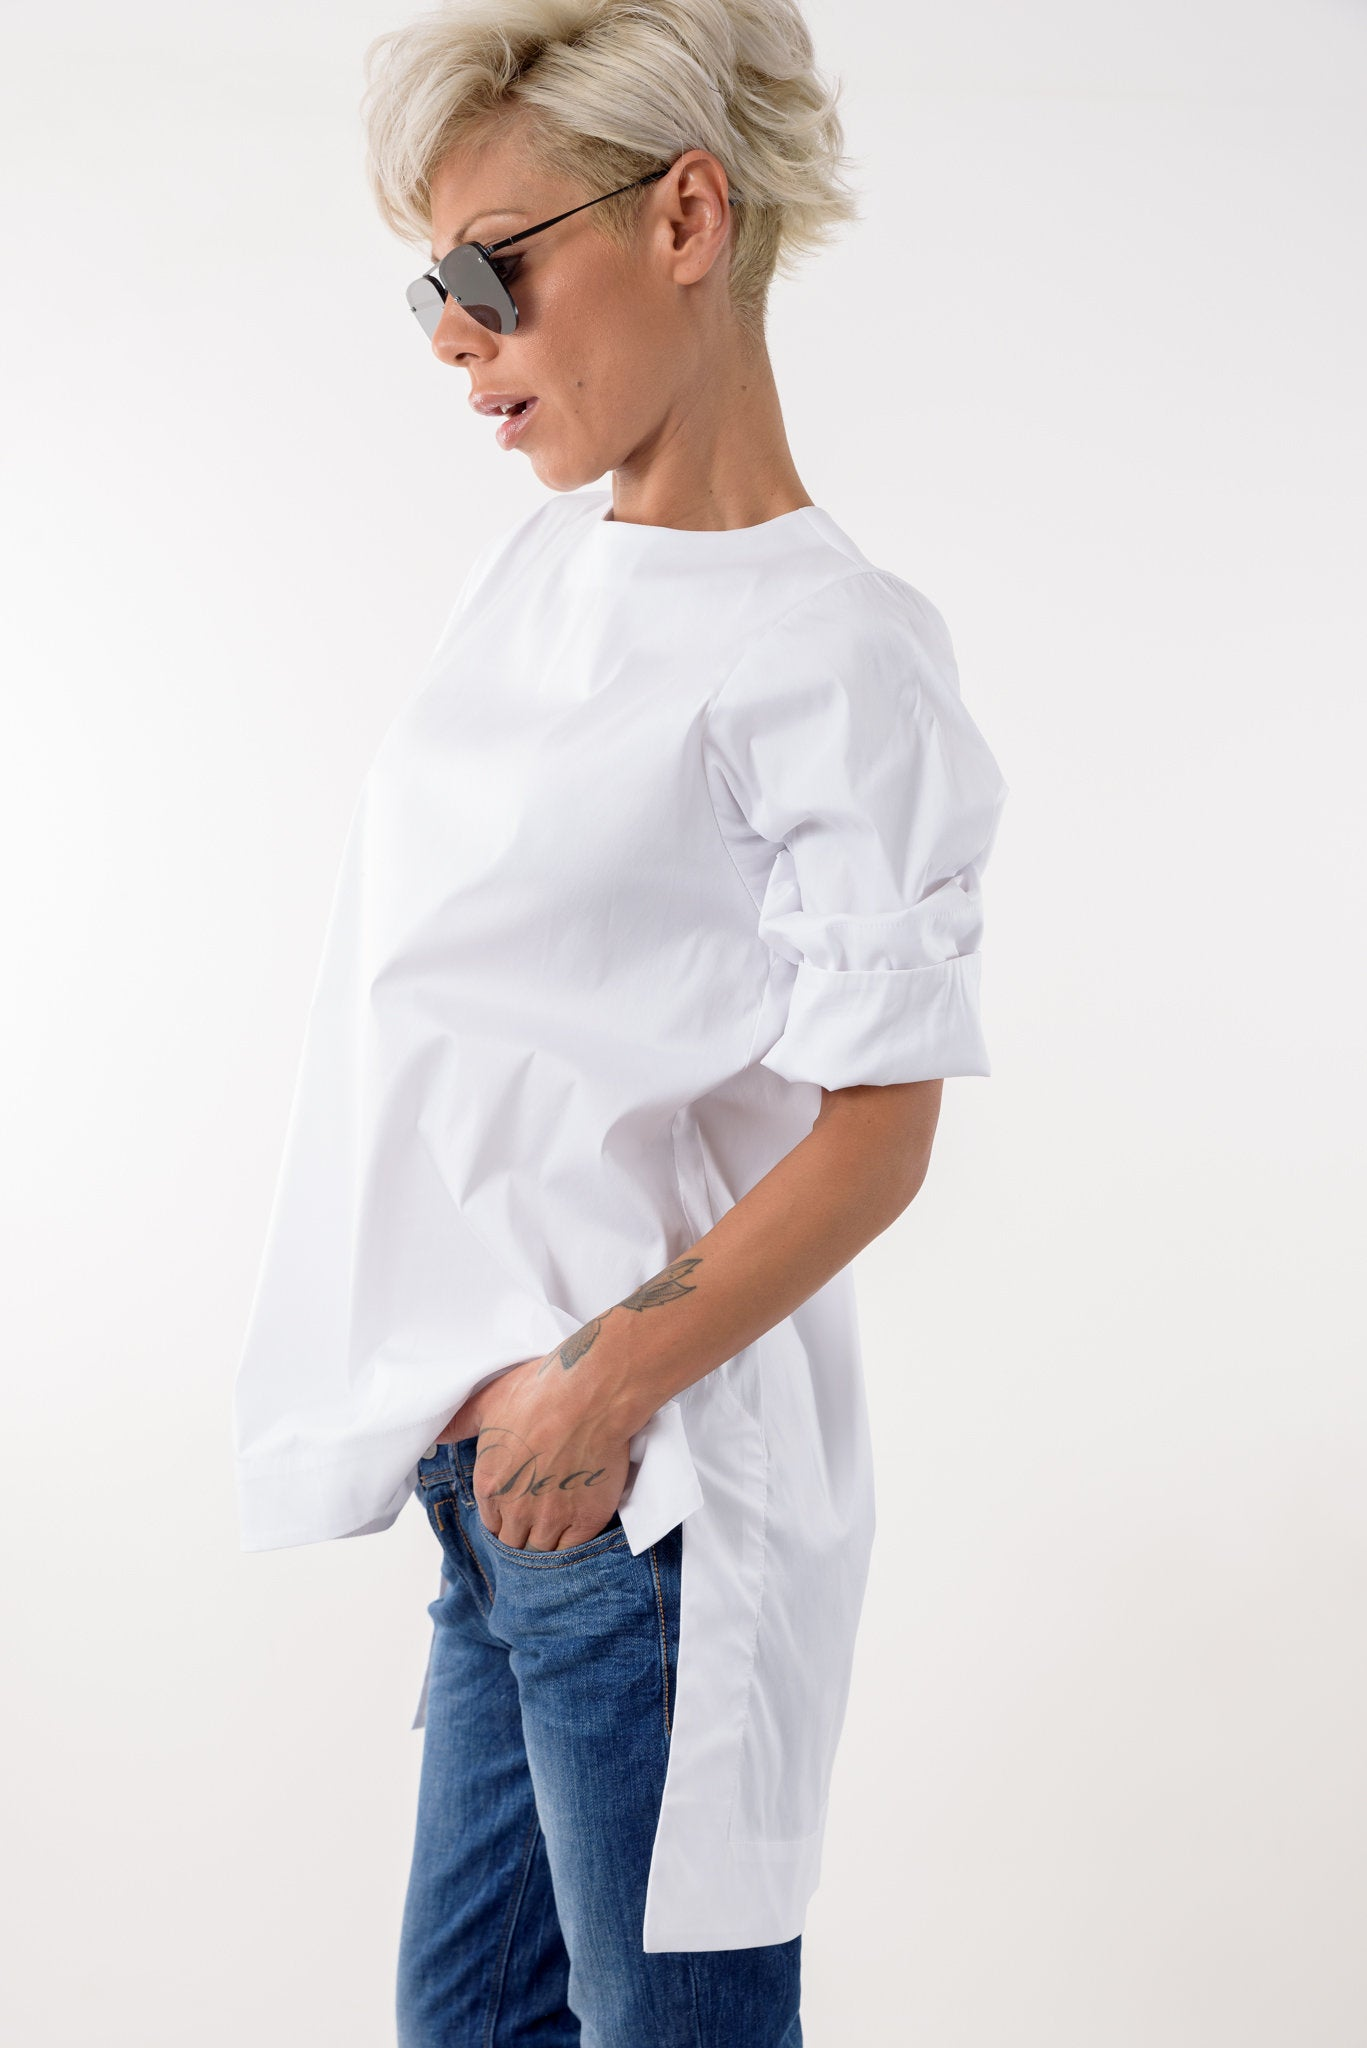 Snow White Cotton Summer Shirt Top Blouse - Clothes By Locker Room